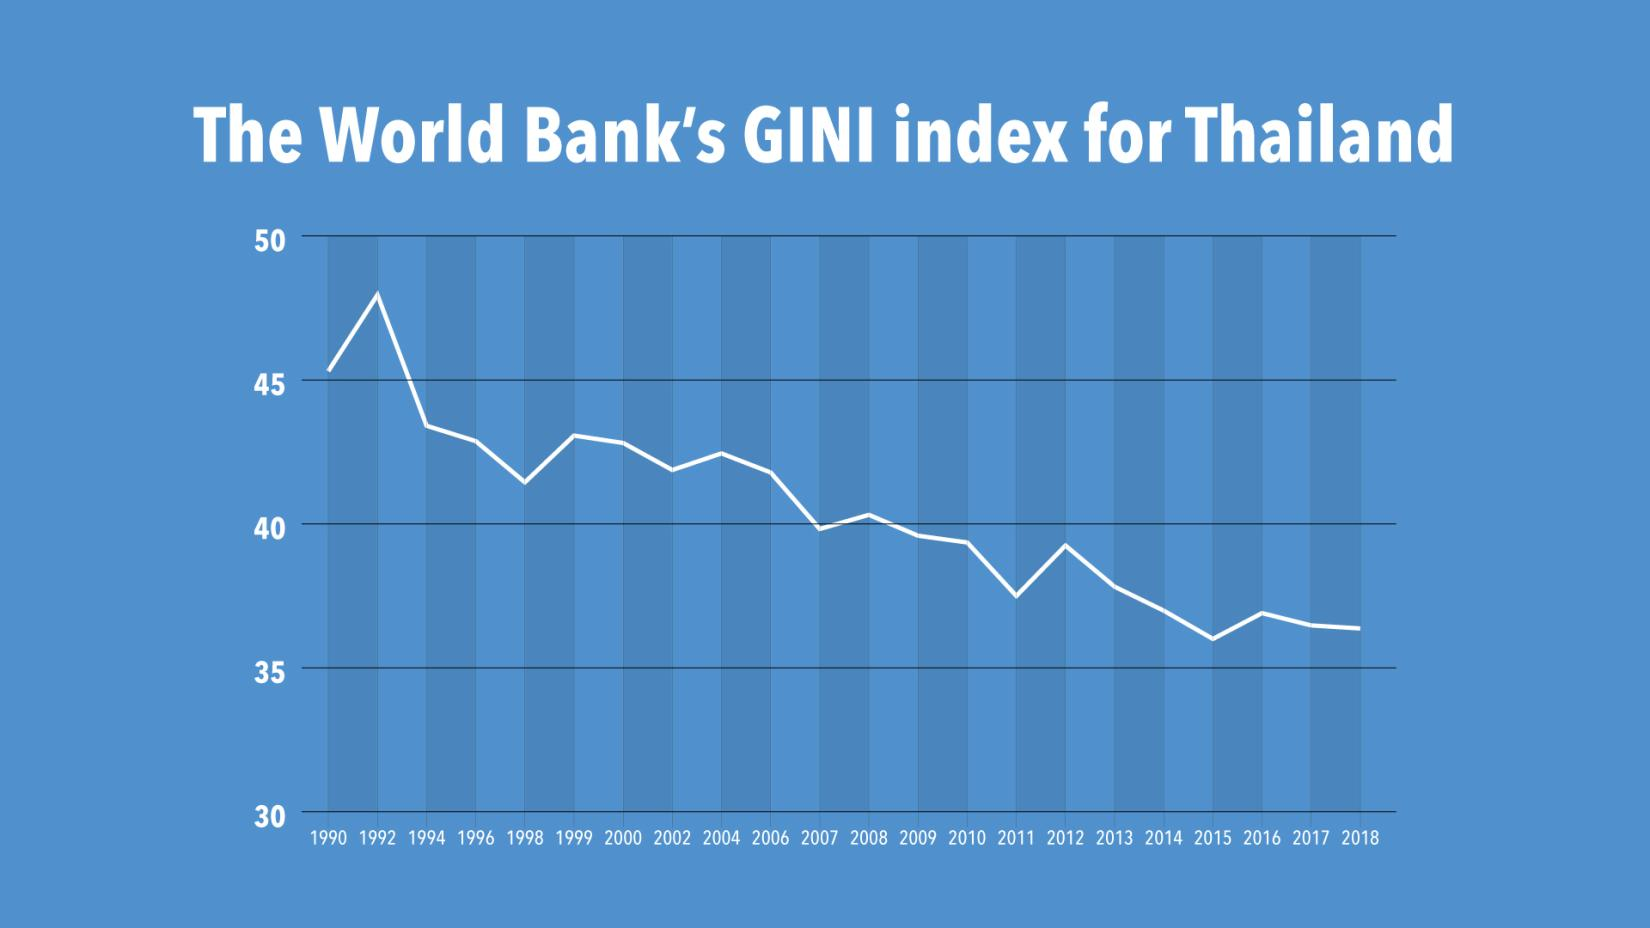 Thailand's income inequality has shown a downward trend during the past 30 years